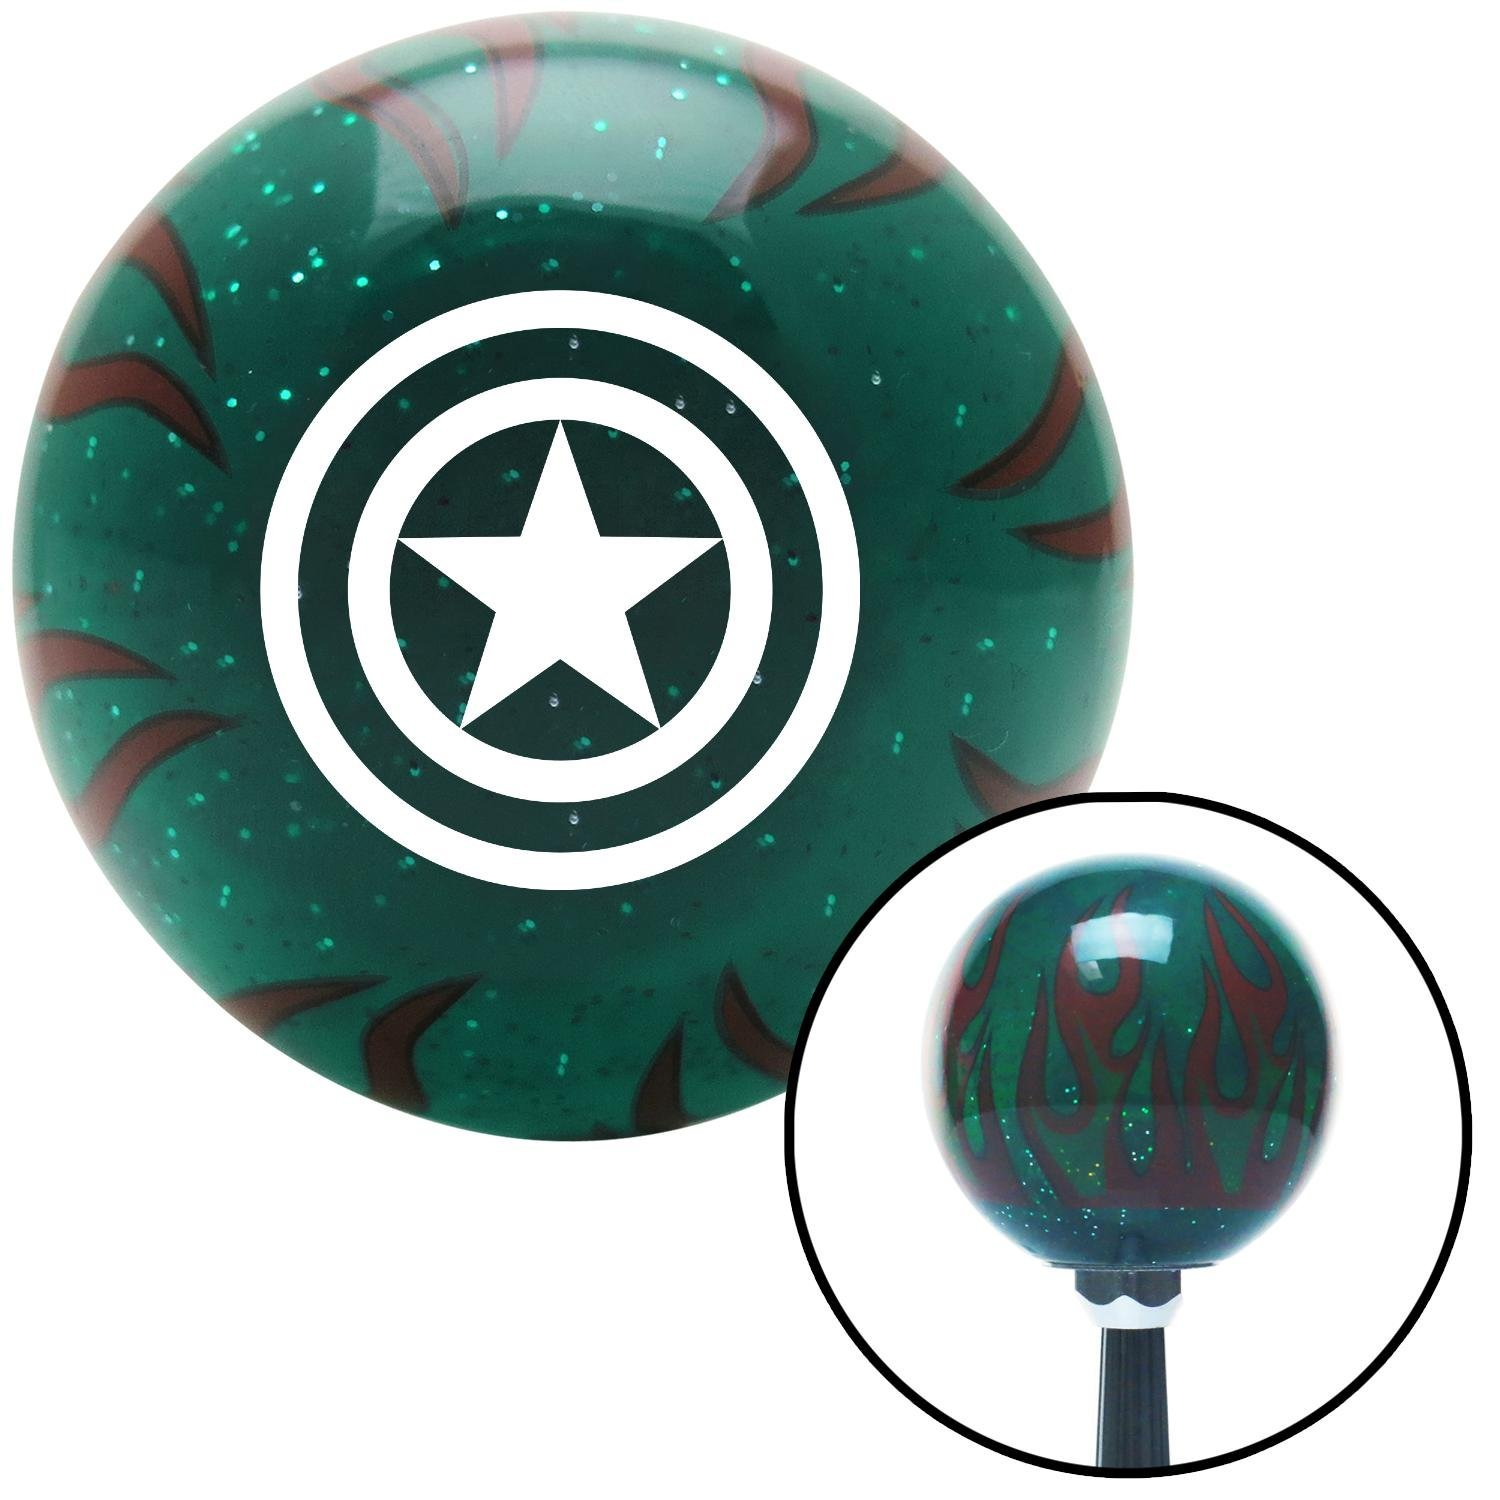 White Star Inside Circles American Shifter 266824 Green Flame Metal Flake Shift Knob with M16 x 1.5 Insert